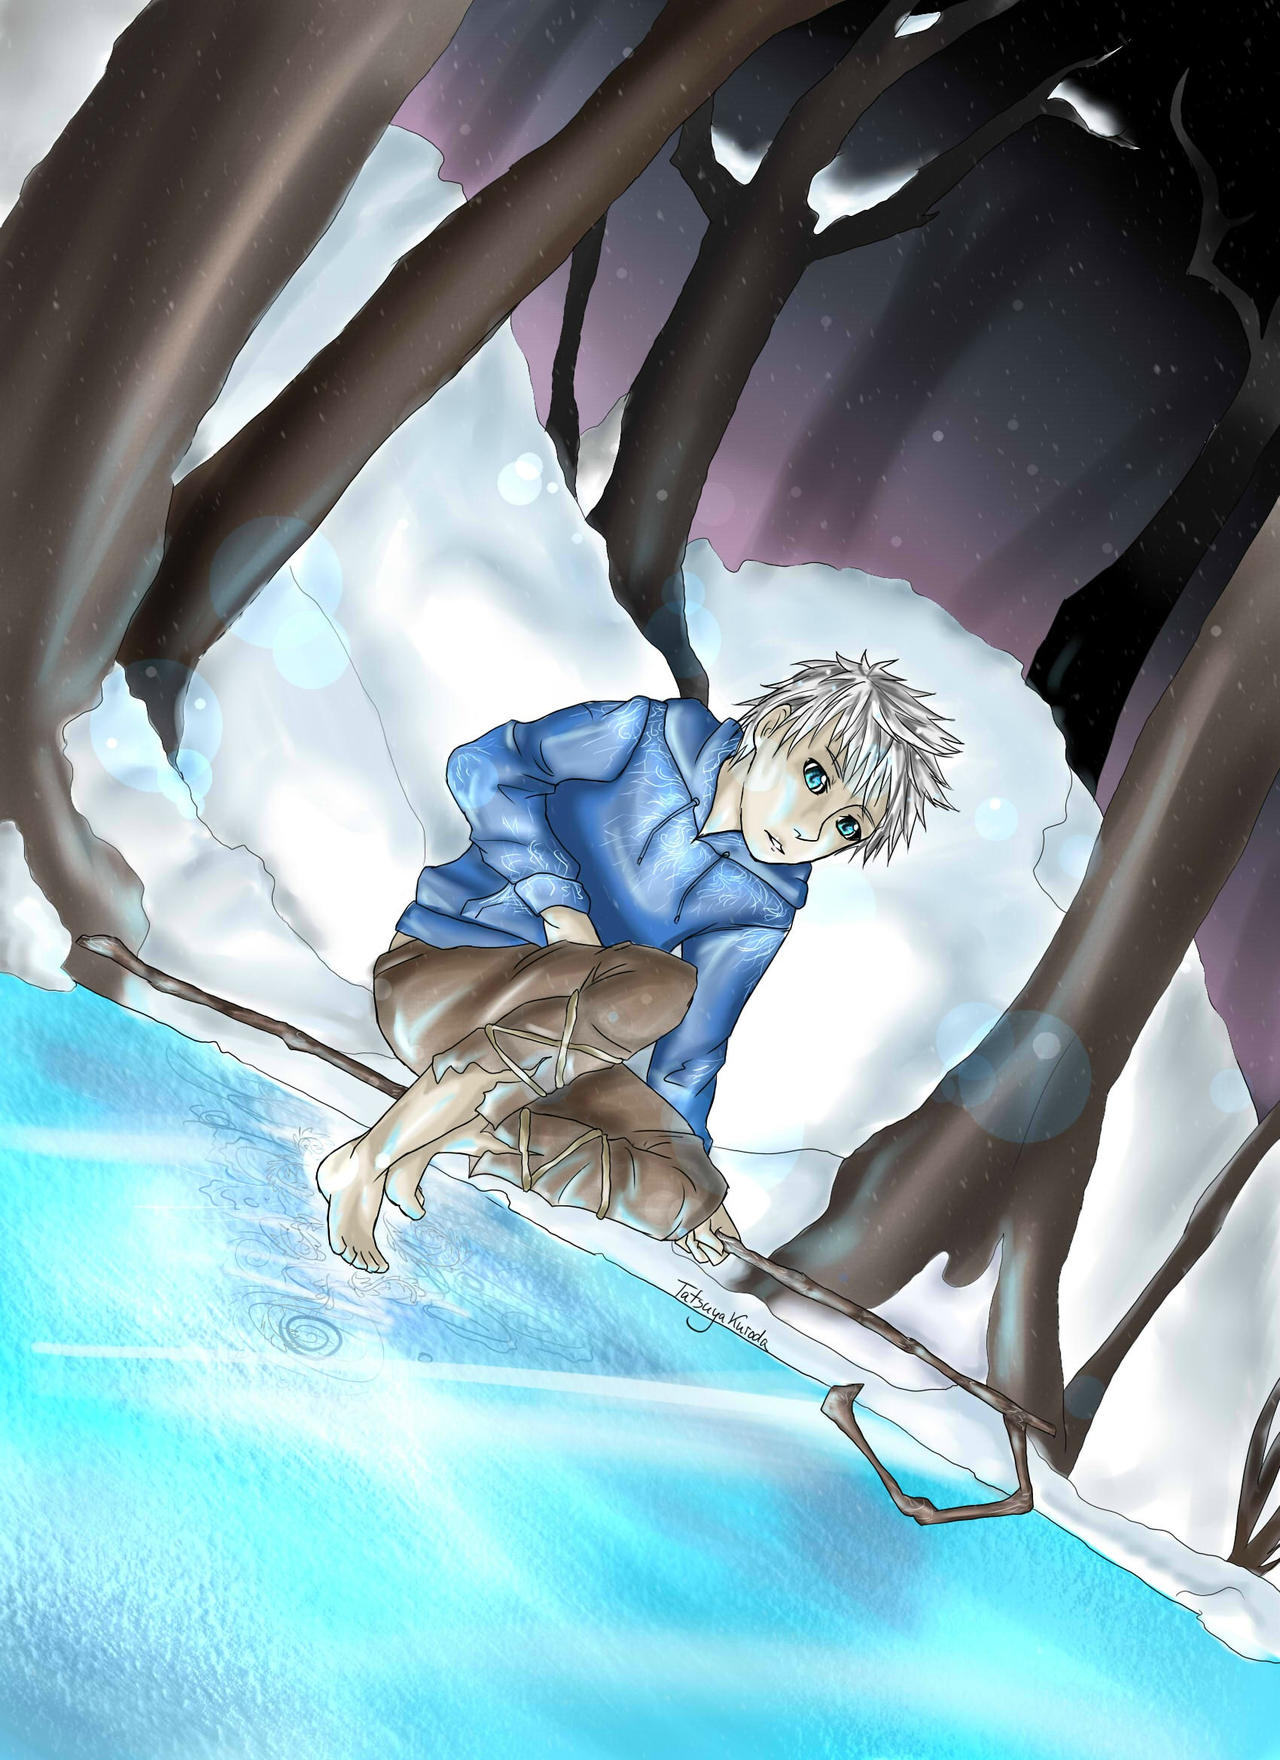 RotG - Walking on Ice by TatsuyaKuroda